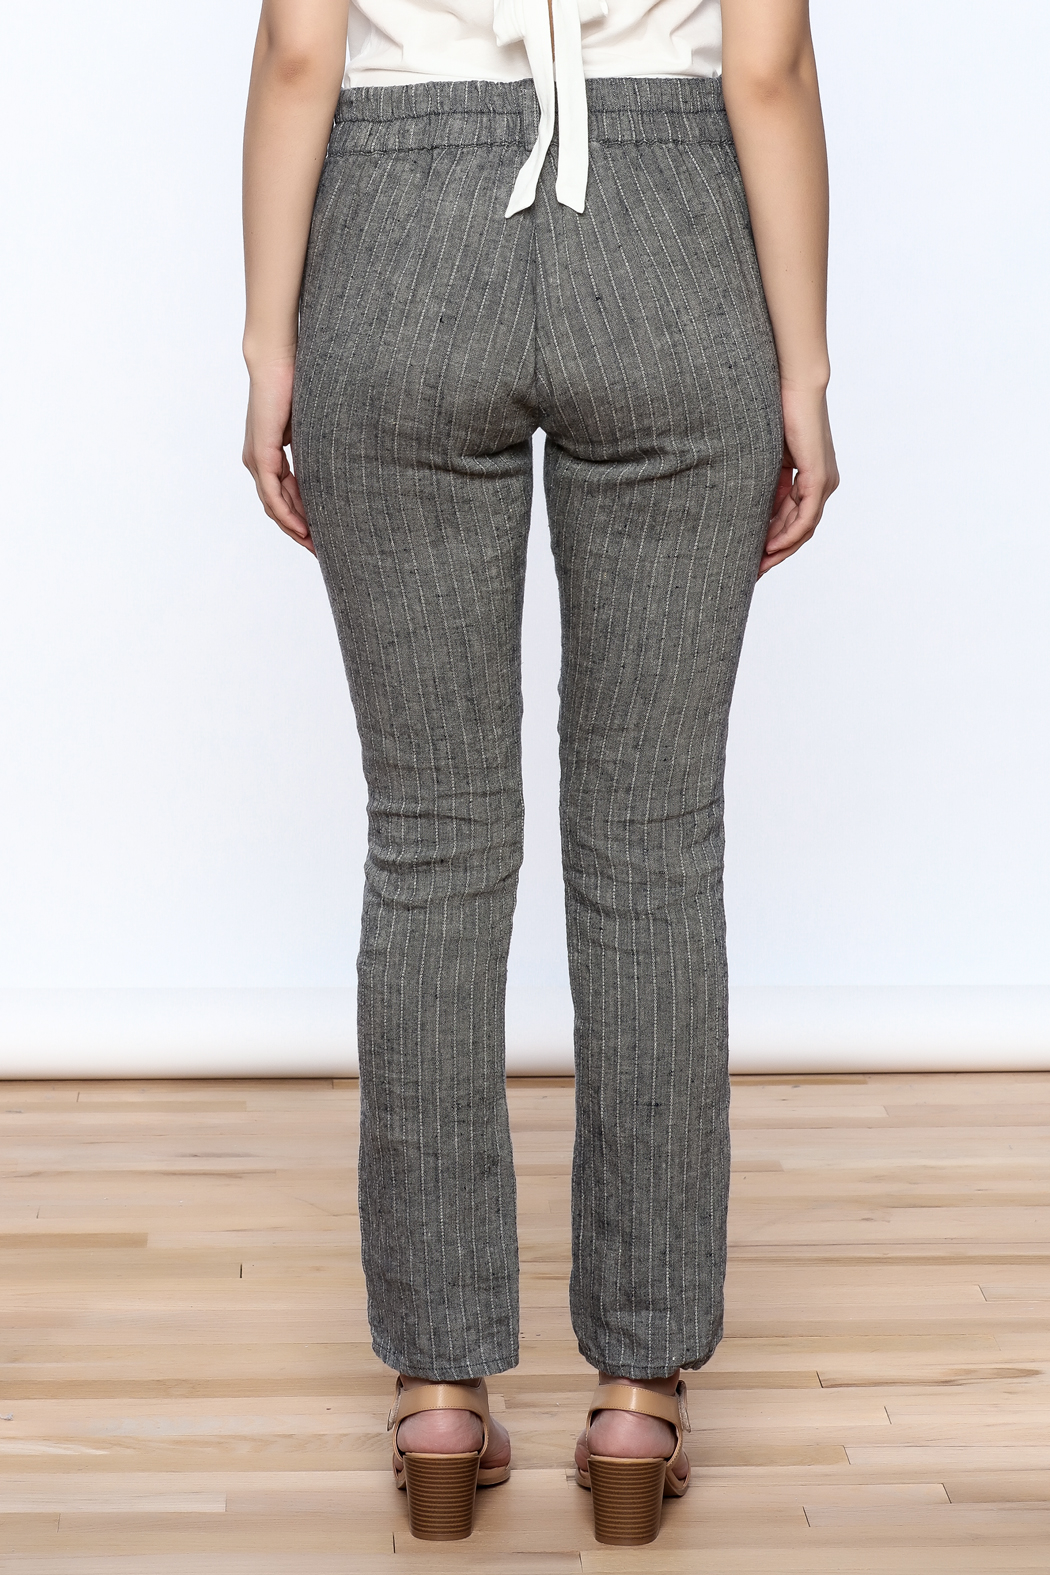 Neesh by D.A.R. Pinstripe Linen Pants - Back Cropped Image